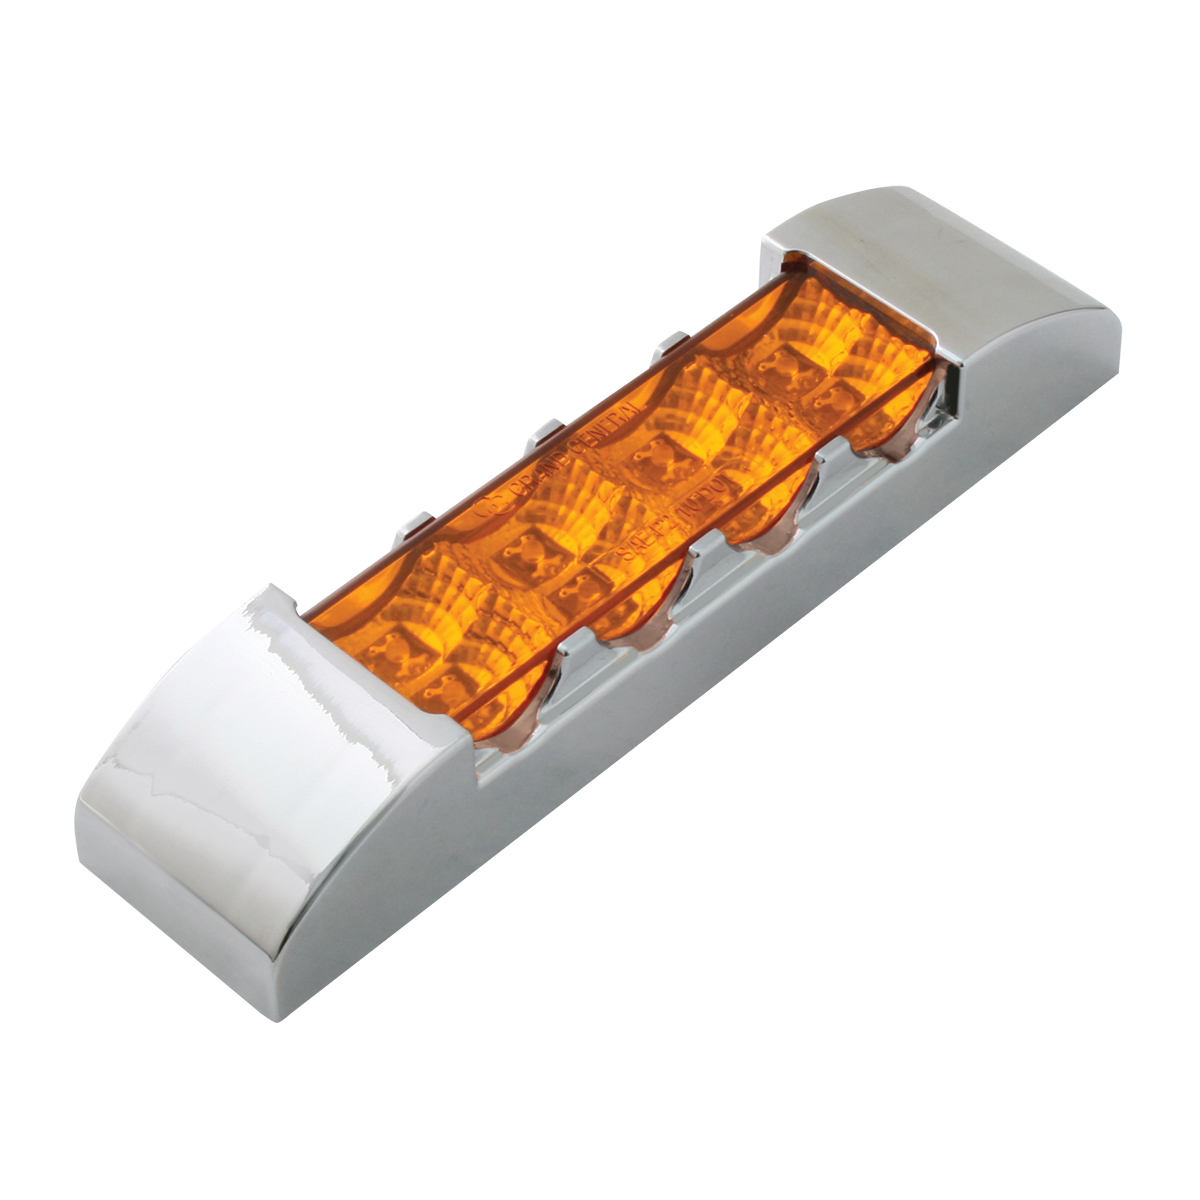 76170 Slim Rectangular Spyder LED Light in Amber/Amber with Chrome Plastic Bezel